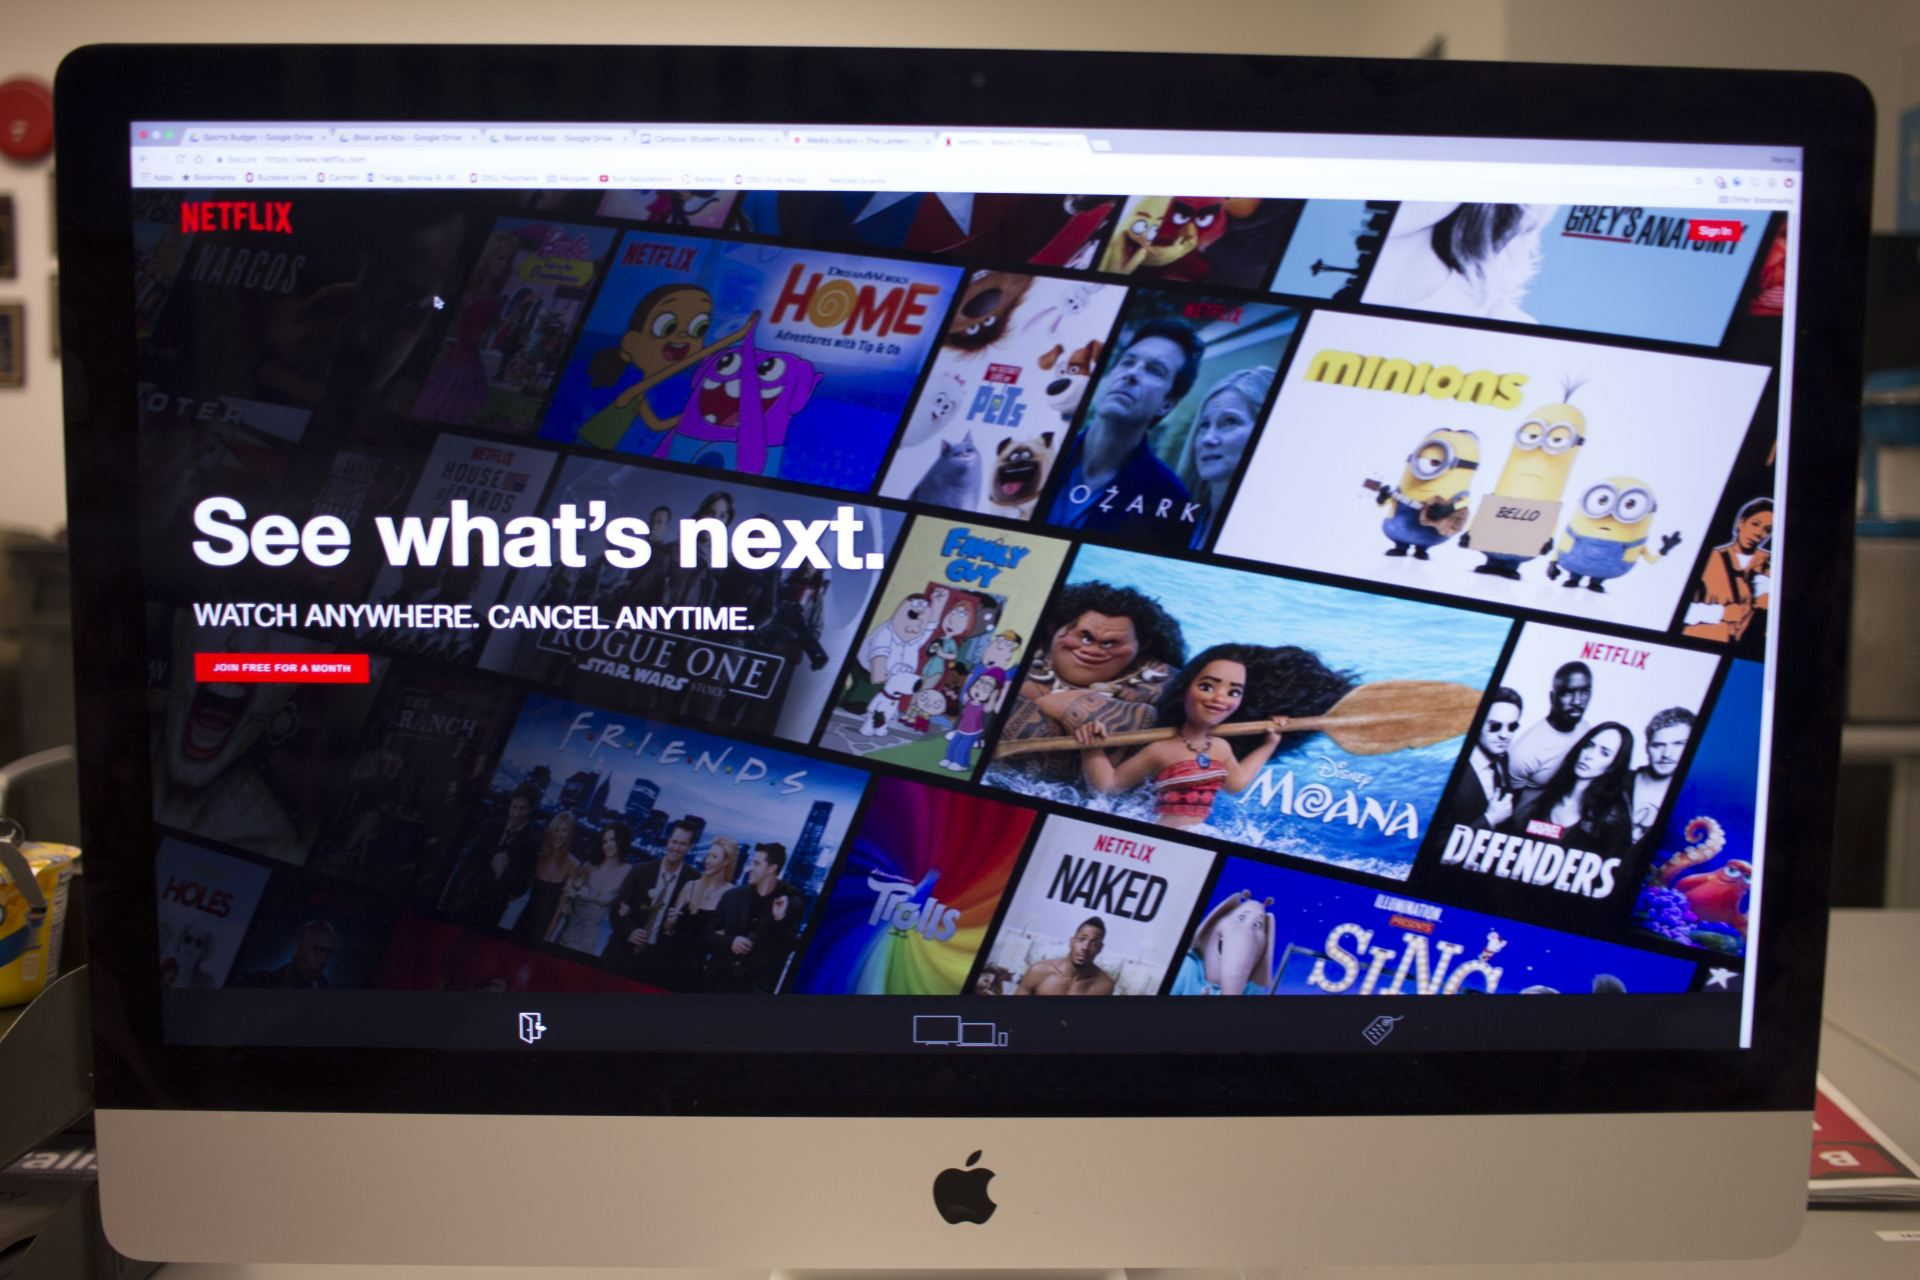 Netflix has over 8,000 movie and television show titles combined available for streaming. Credit: Ris Twigg | Former Assistant Photo Editor